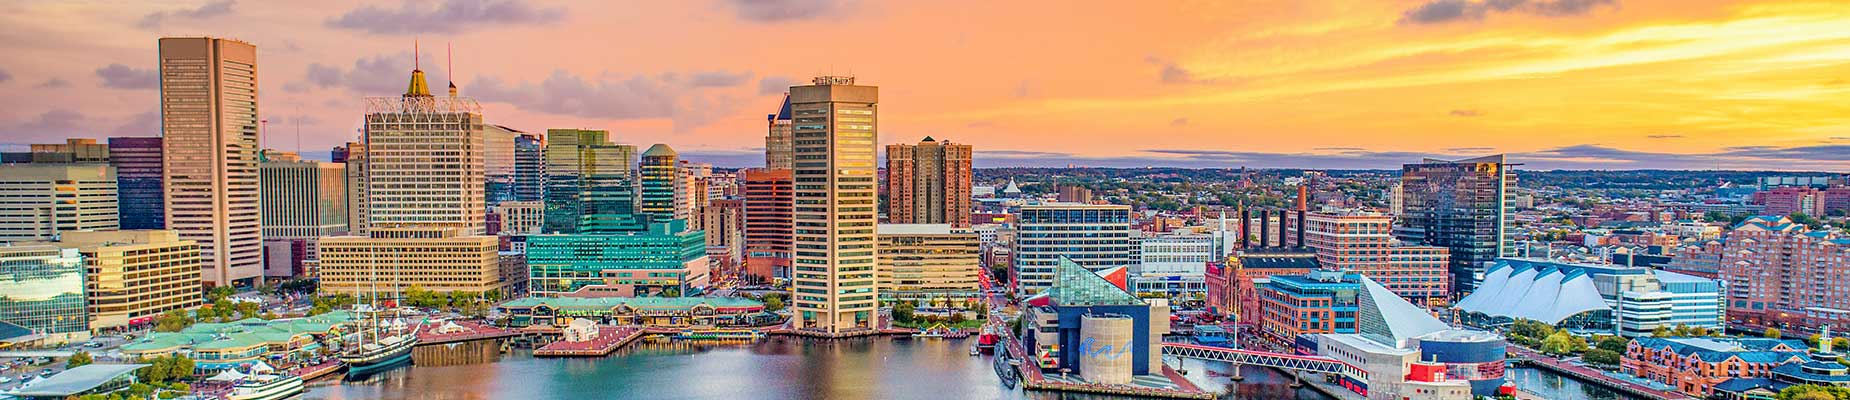 Baltimore MD Human Resources Consulting and Outsourcing